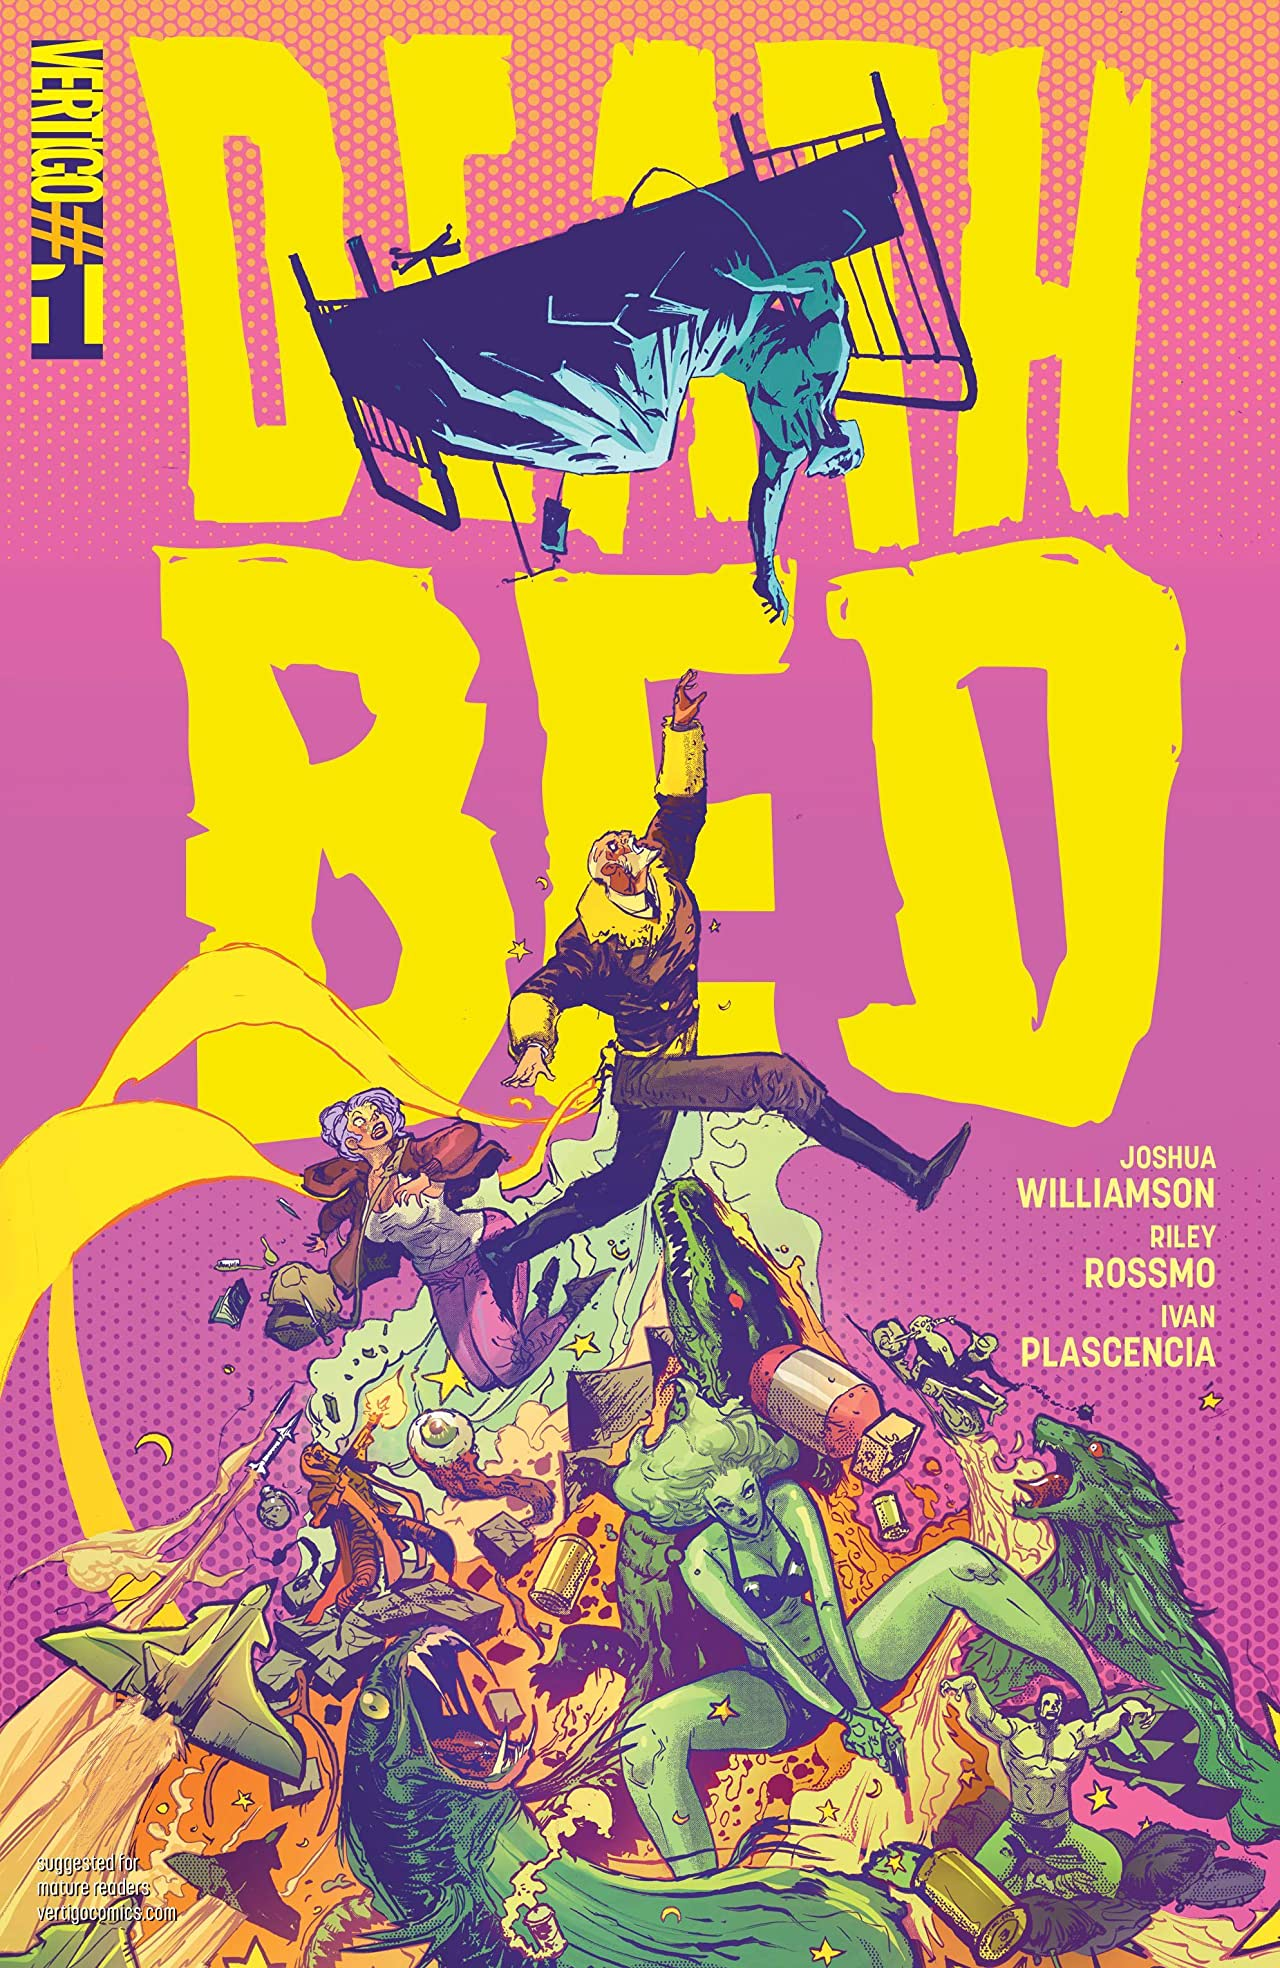 Deathbed (2018) #1